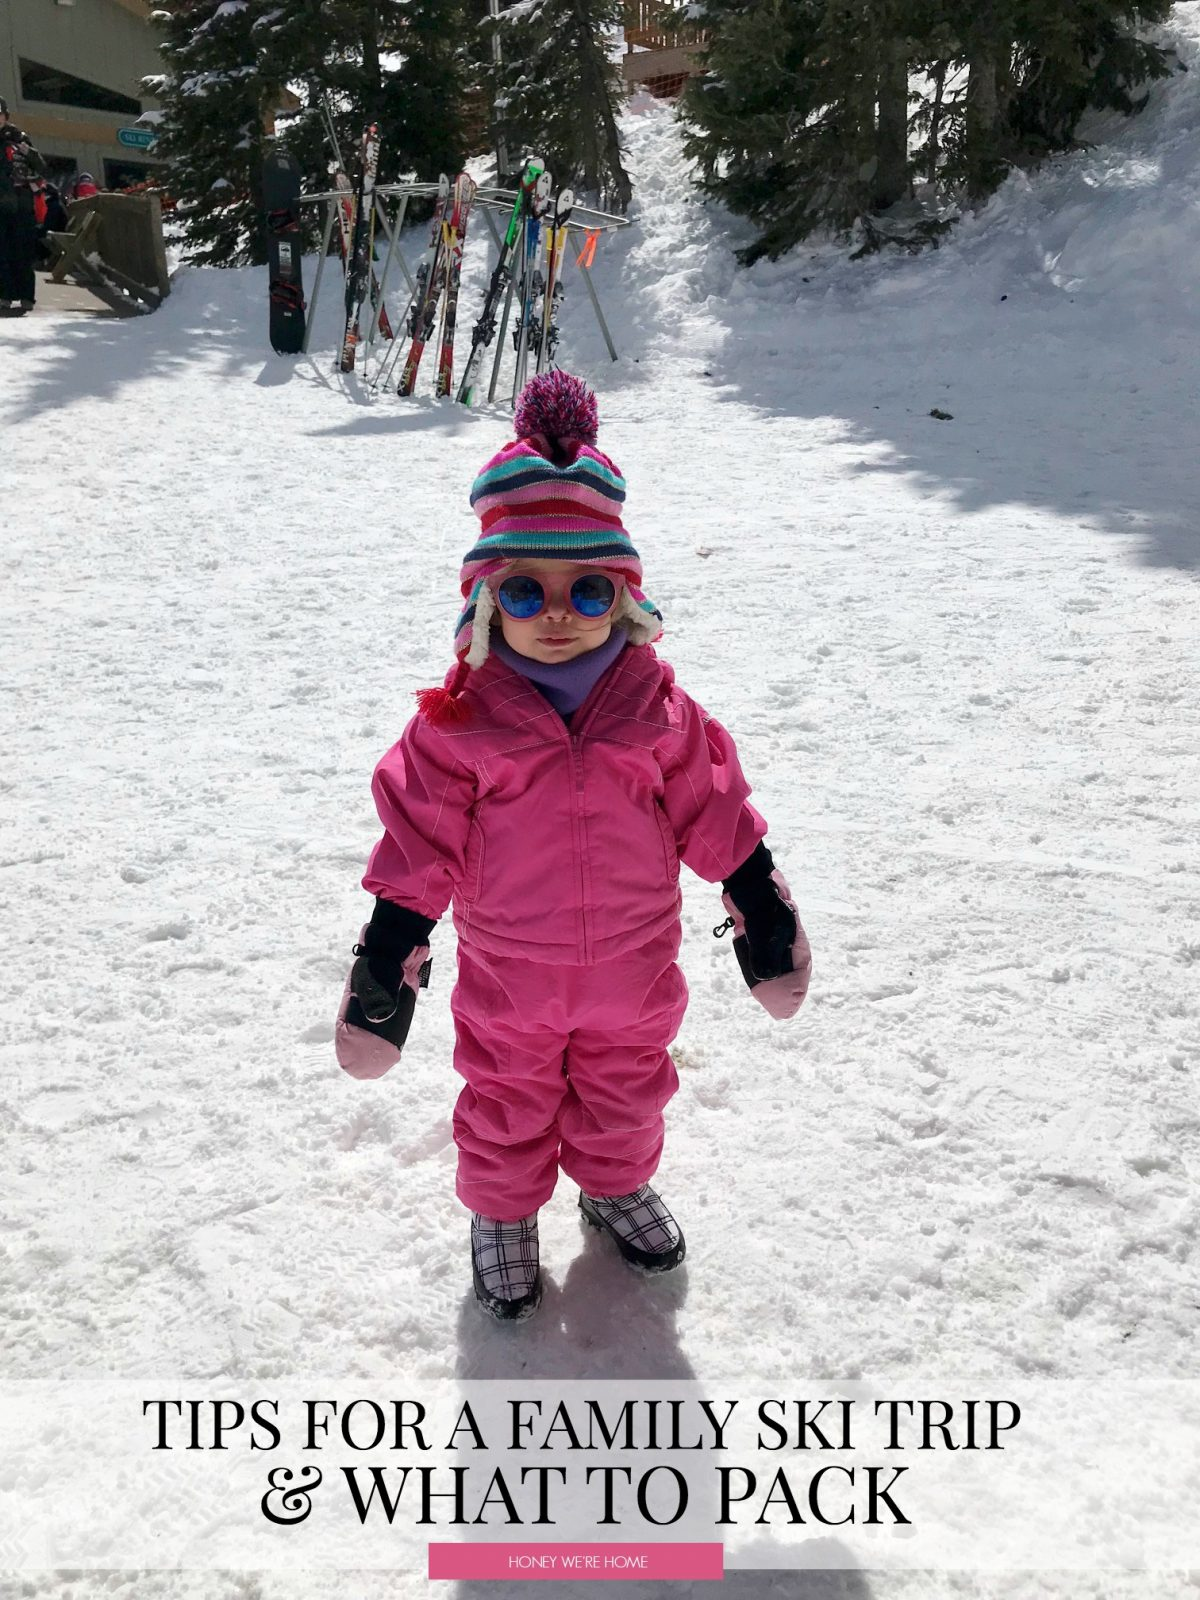 Tips for a Family Ski Trip & What to Pack